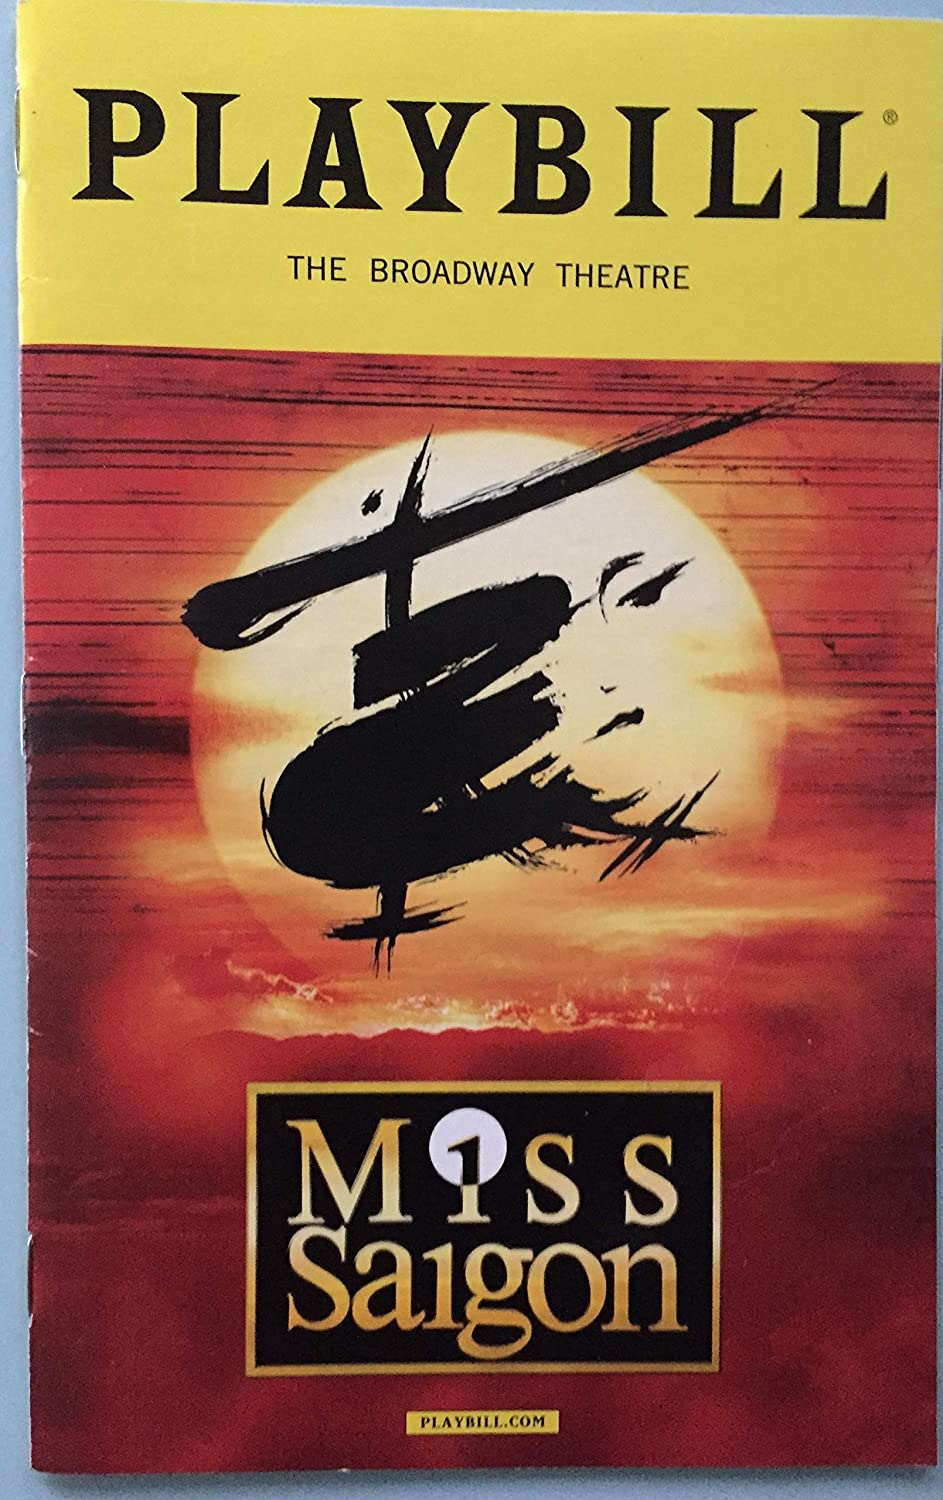 Color Playbill from Miss Saigon at the Broadway Theatre starring Jon Jon Briones Eva Noblezada Alistair Brammer Katie Rose Clarke Music by Claude-Michel Schö nberg Lyrics by Richard Maltby, Jr. and Alain Boublil